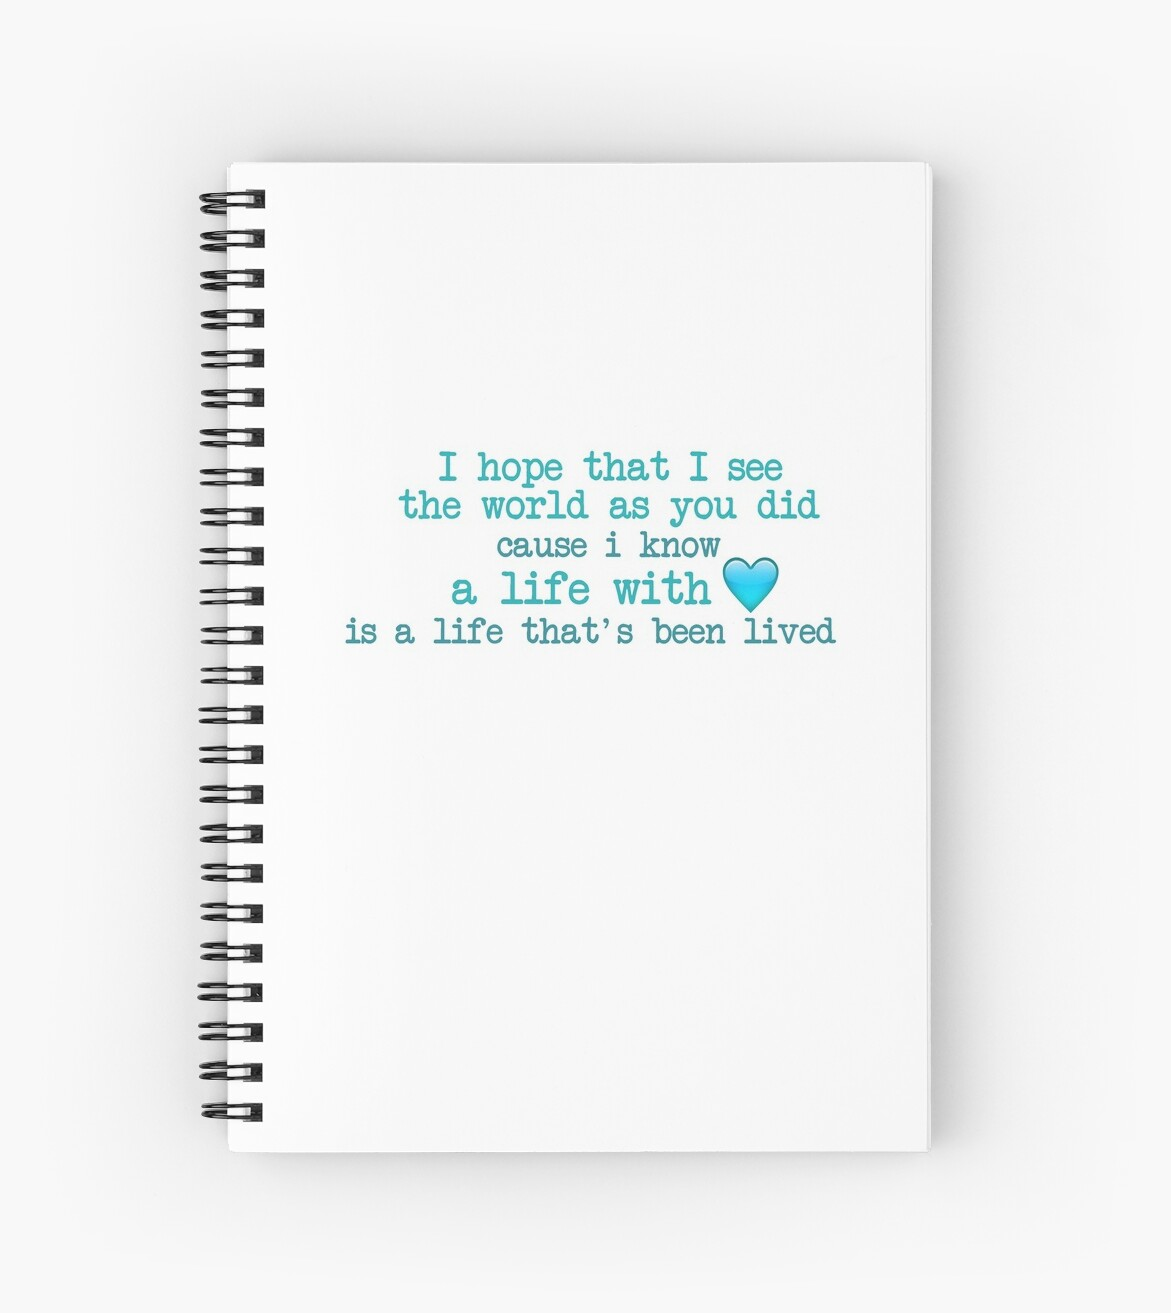 Supermarket flowers lyrics spiral notebooks by annylands redbubble supermarket flowers lyrics by annylands mightylinksfo